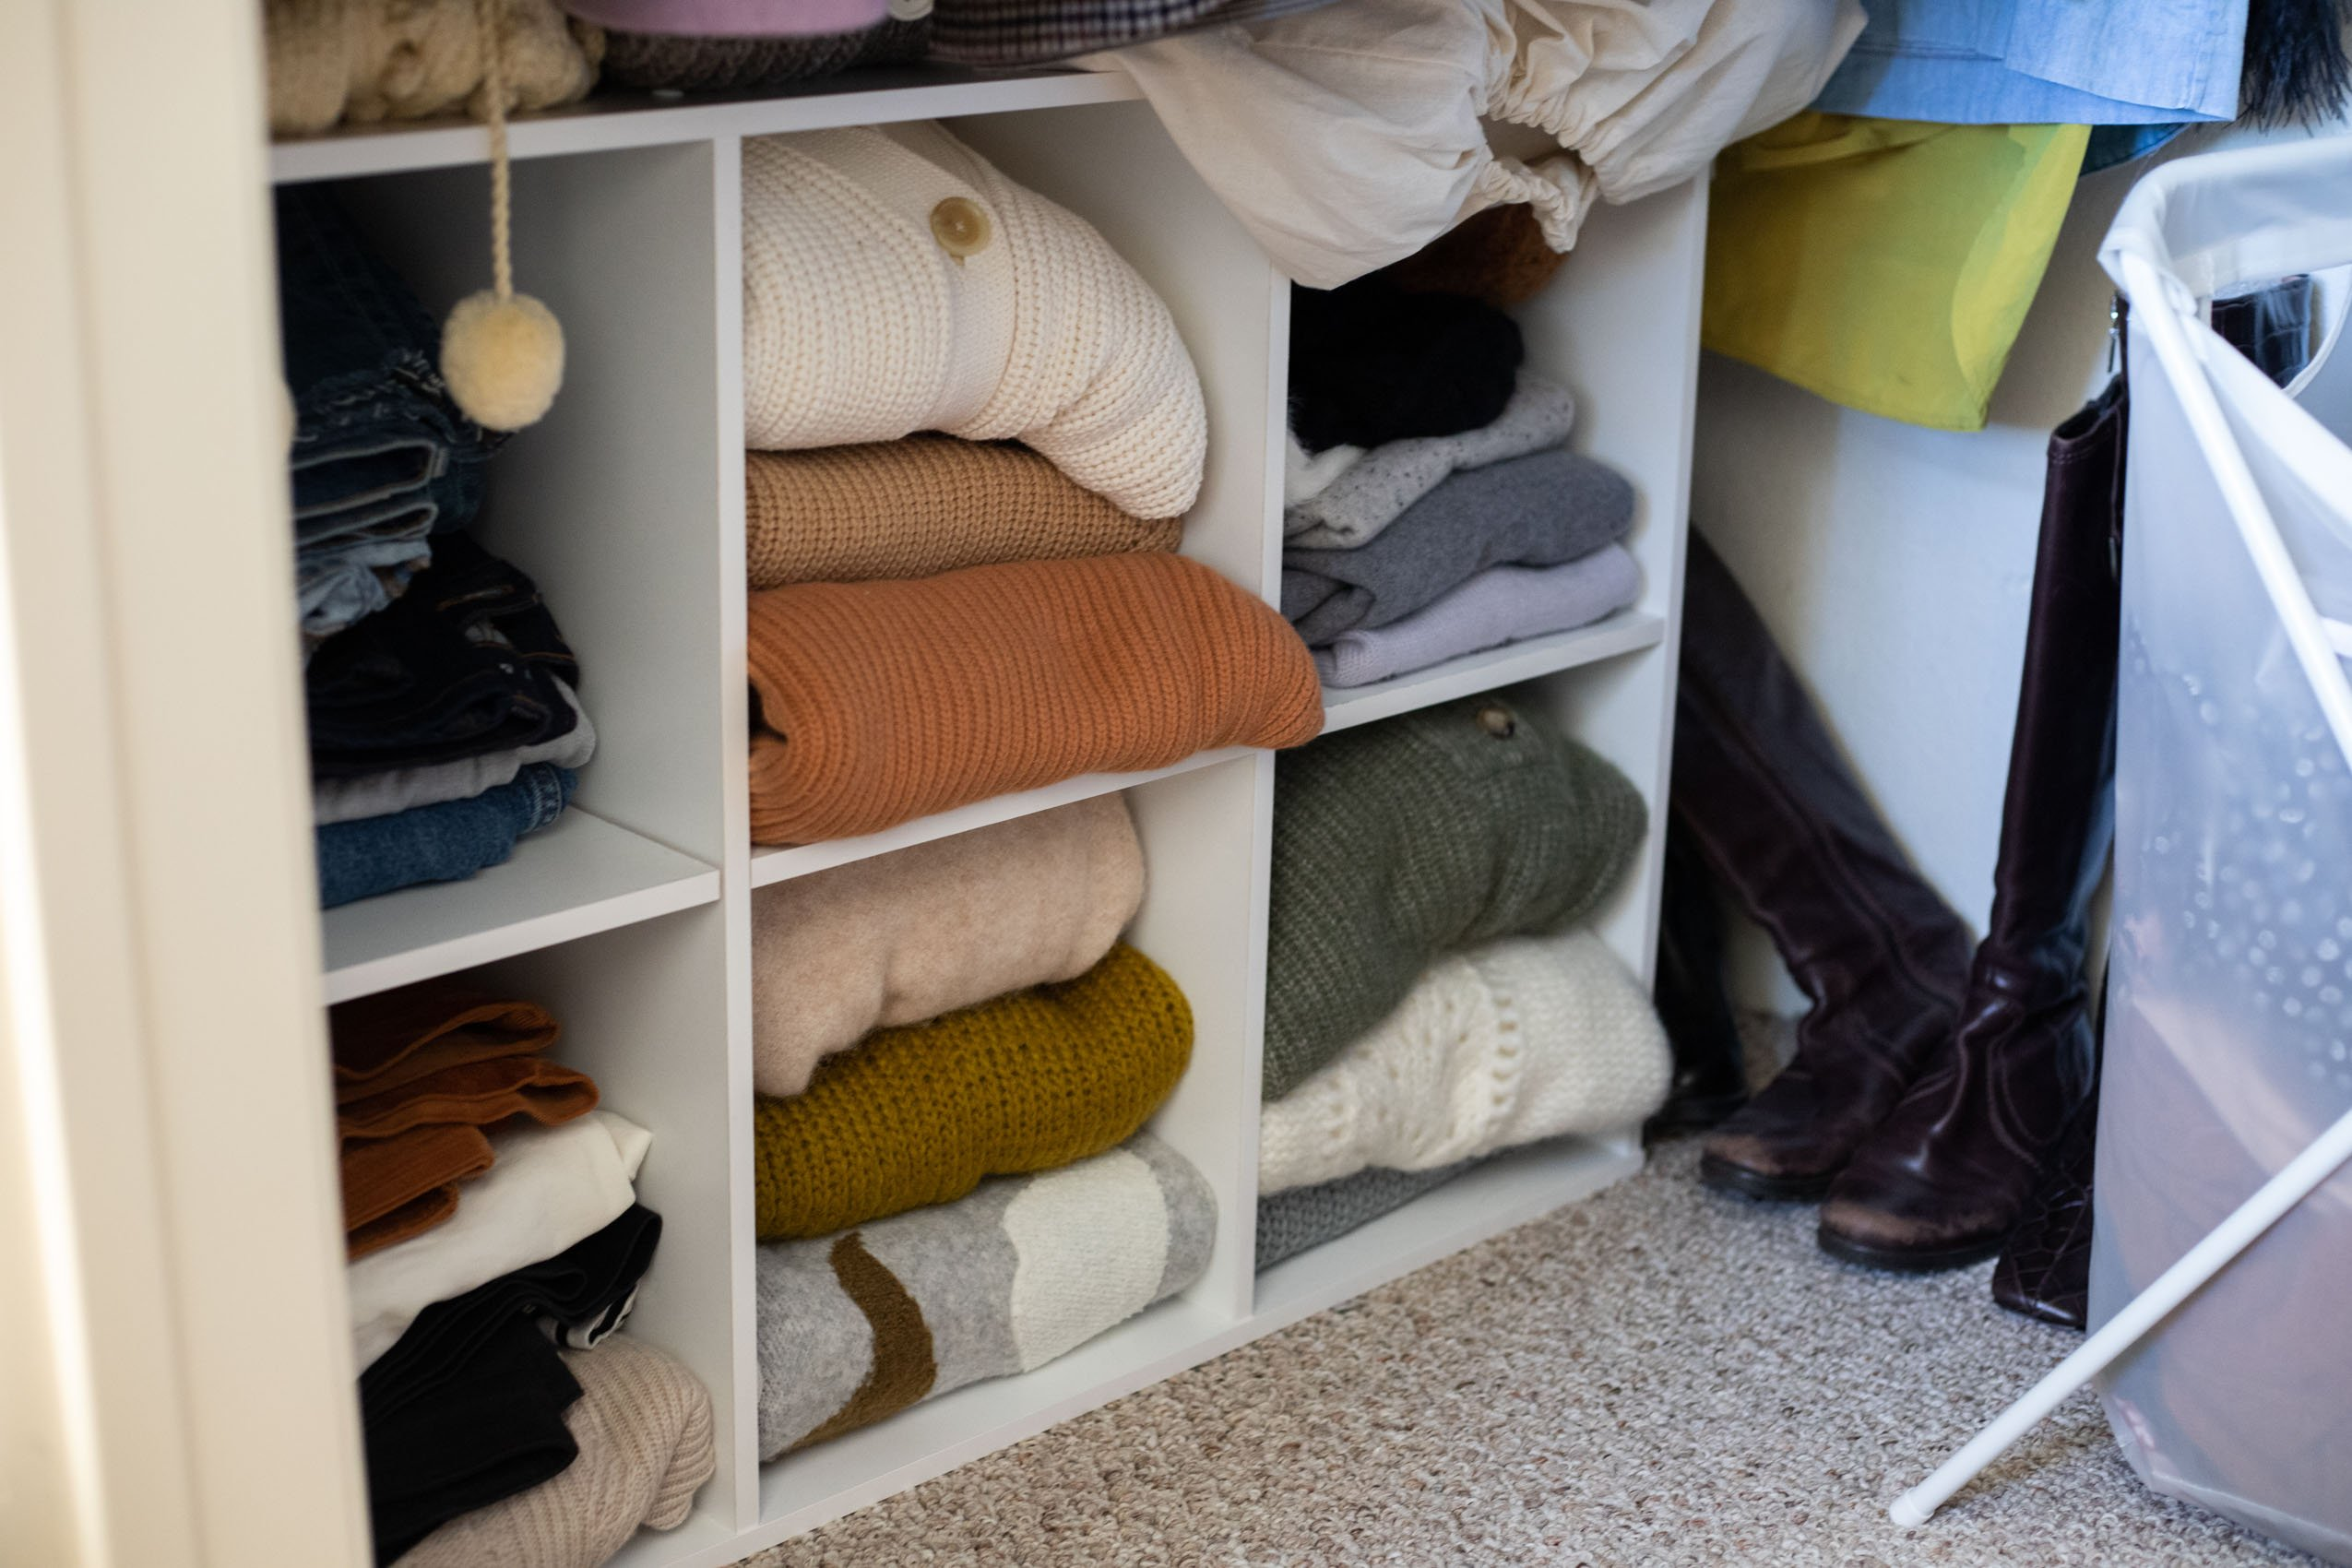 """Closet Clean Out Photos """"After"""", Shelving for sweaters and jeans"""